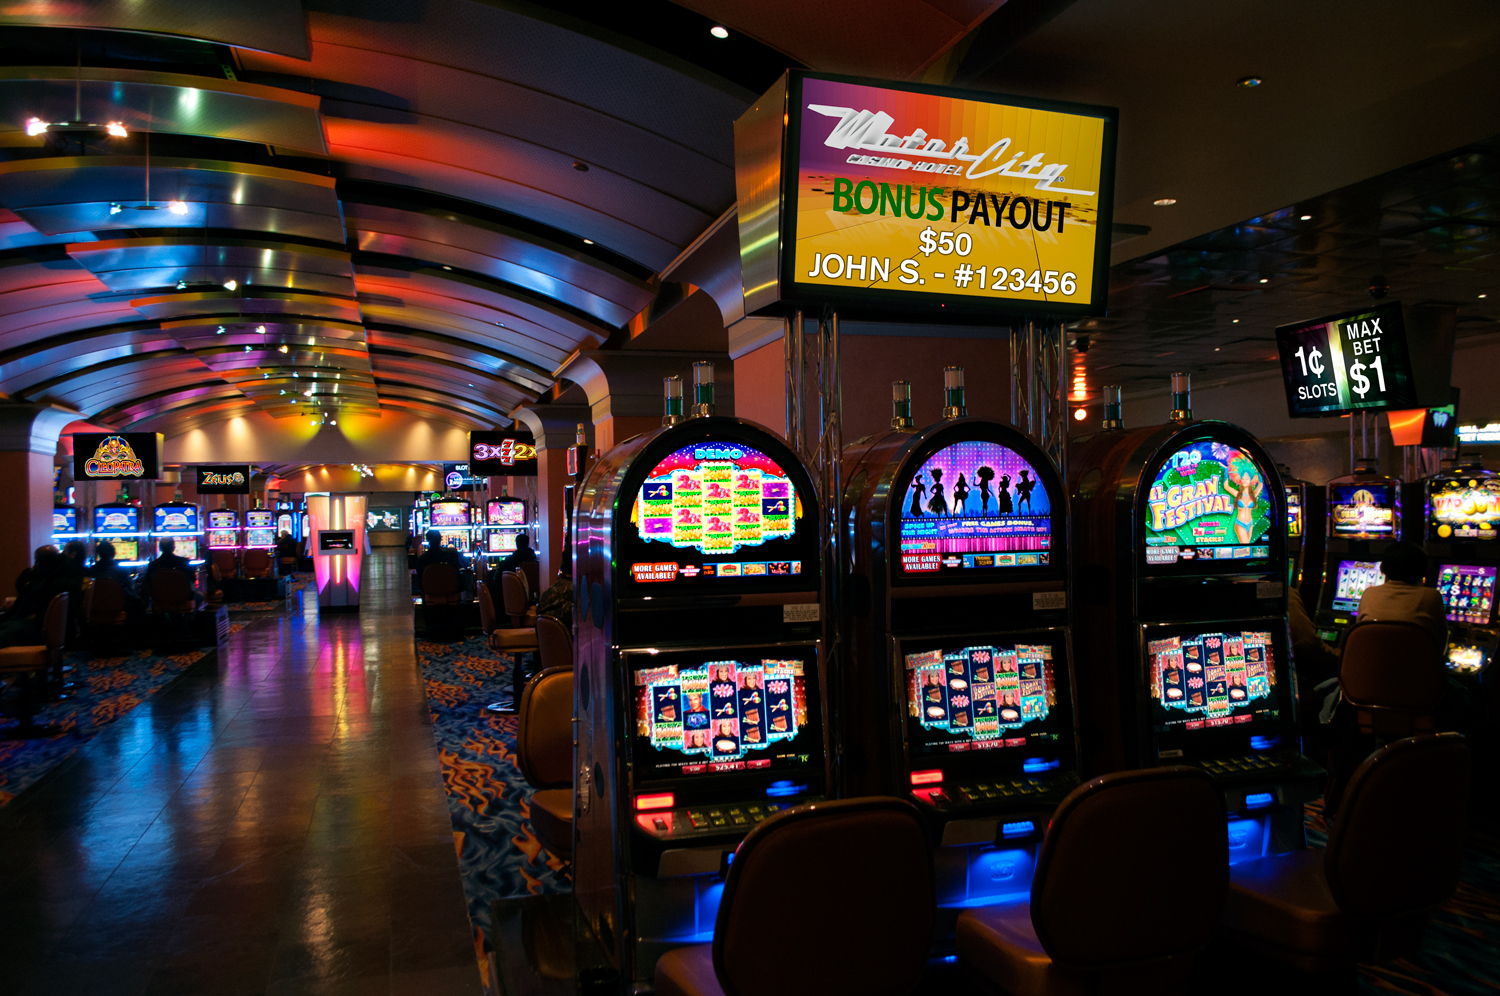 Motorcity casino hotel wins 2014 slot floor technology award for Motor city hotel casino